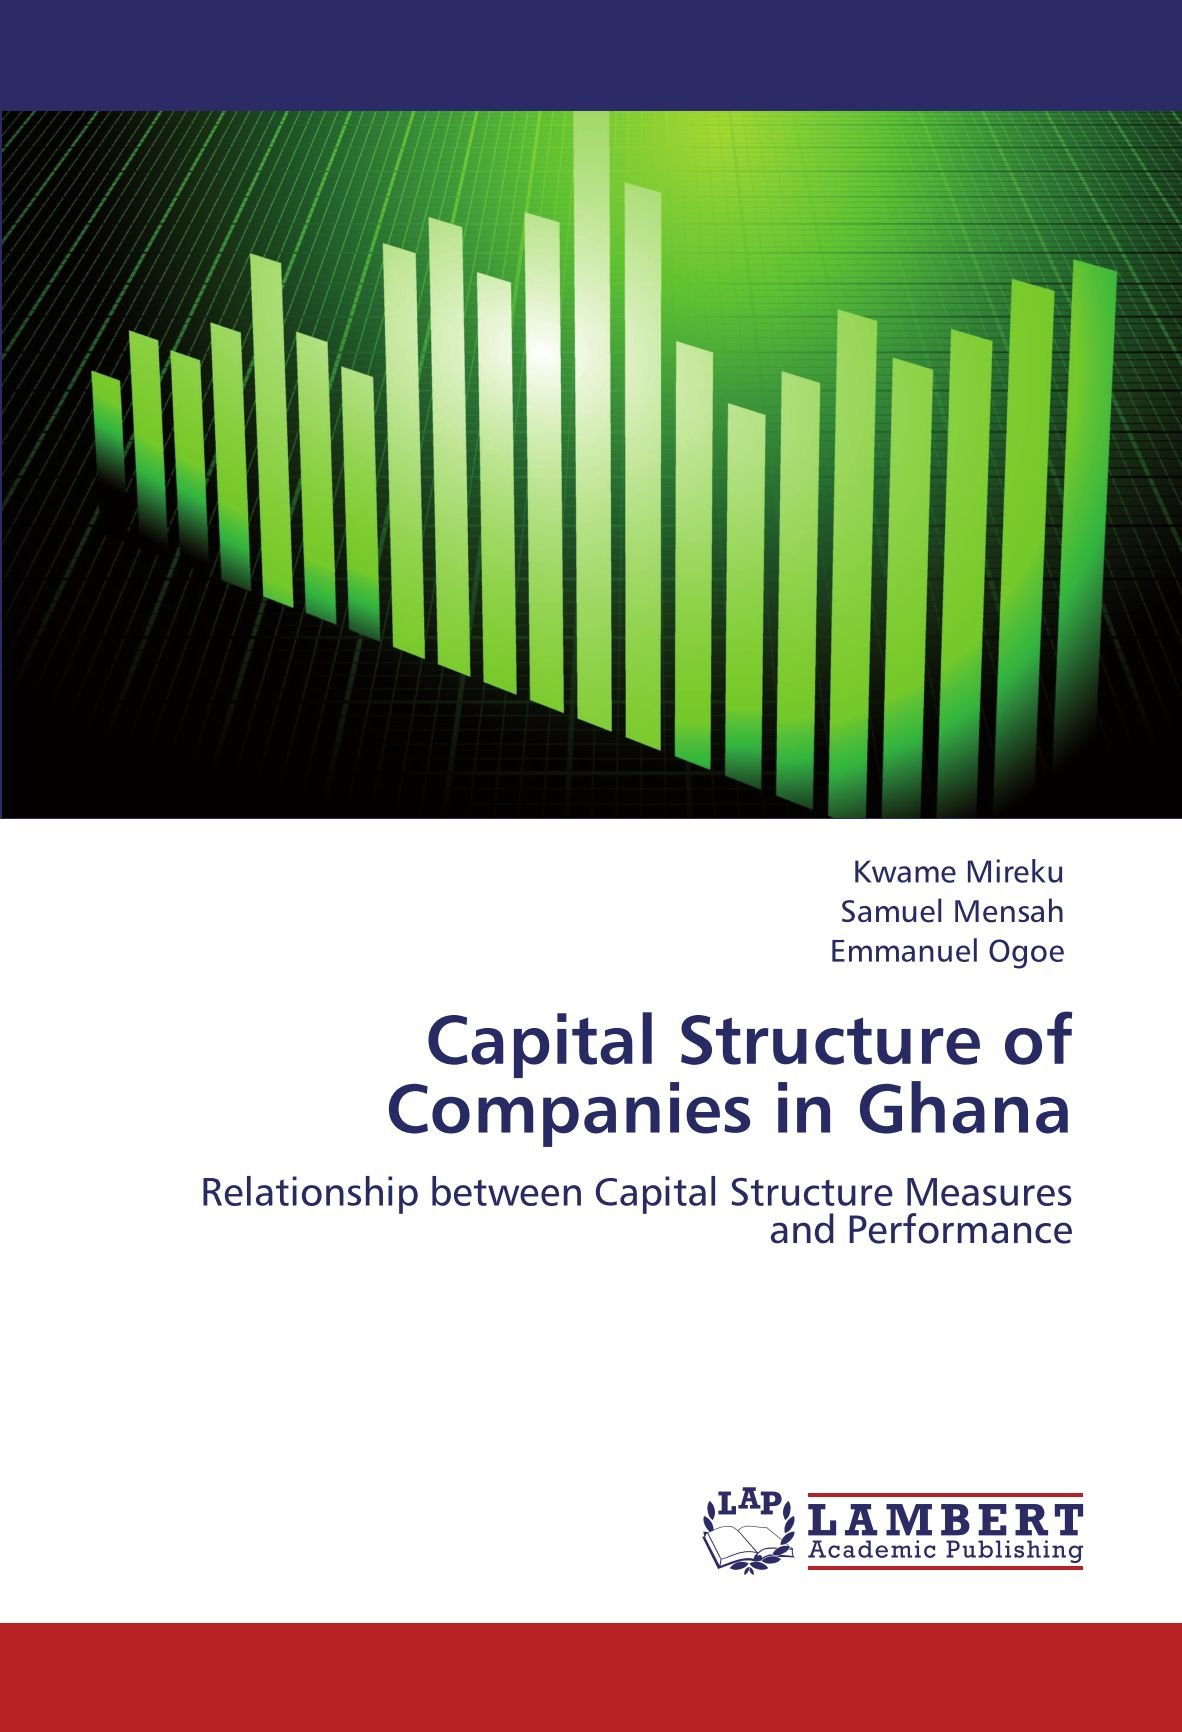 Capital Structure of Companies in Ghana: Relationship between Capital Structure Measures and Performance PDF